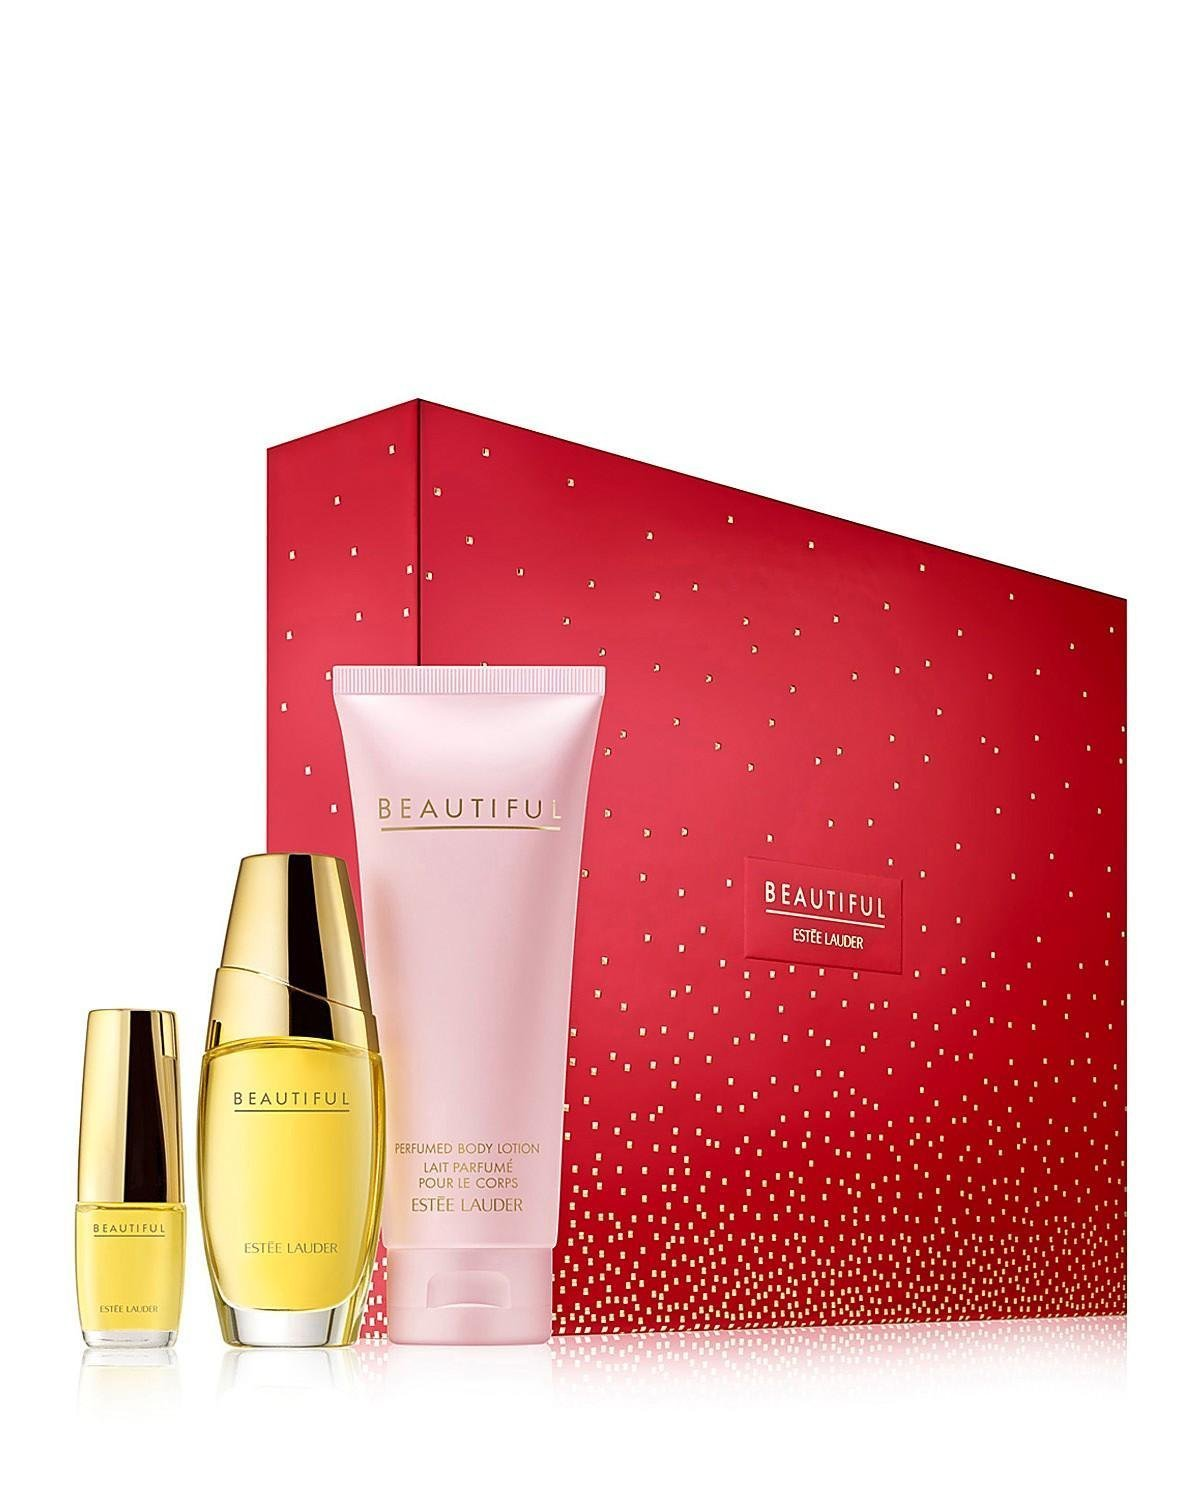 Estee Lauder Beautiful To Go = Set includes:Eau de parfum spray (1 oz.)= Perfumed body lotion (3.4 oz.) = Eau de parfum purse spray (0.16 oz.)